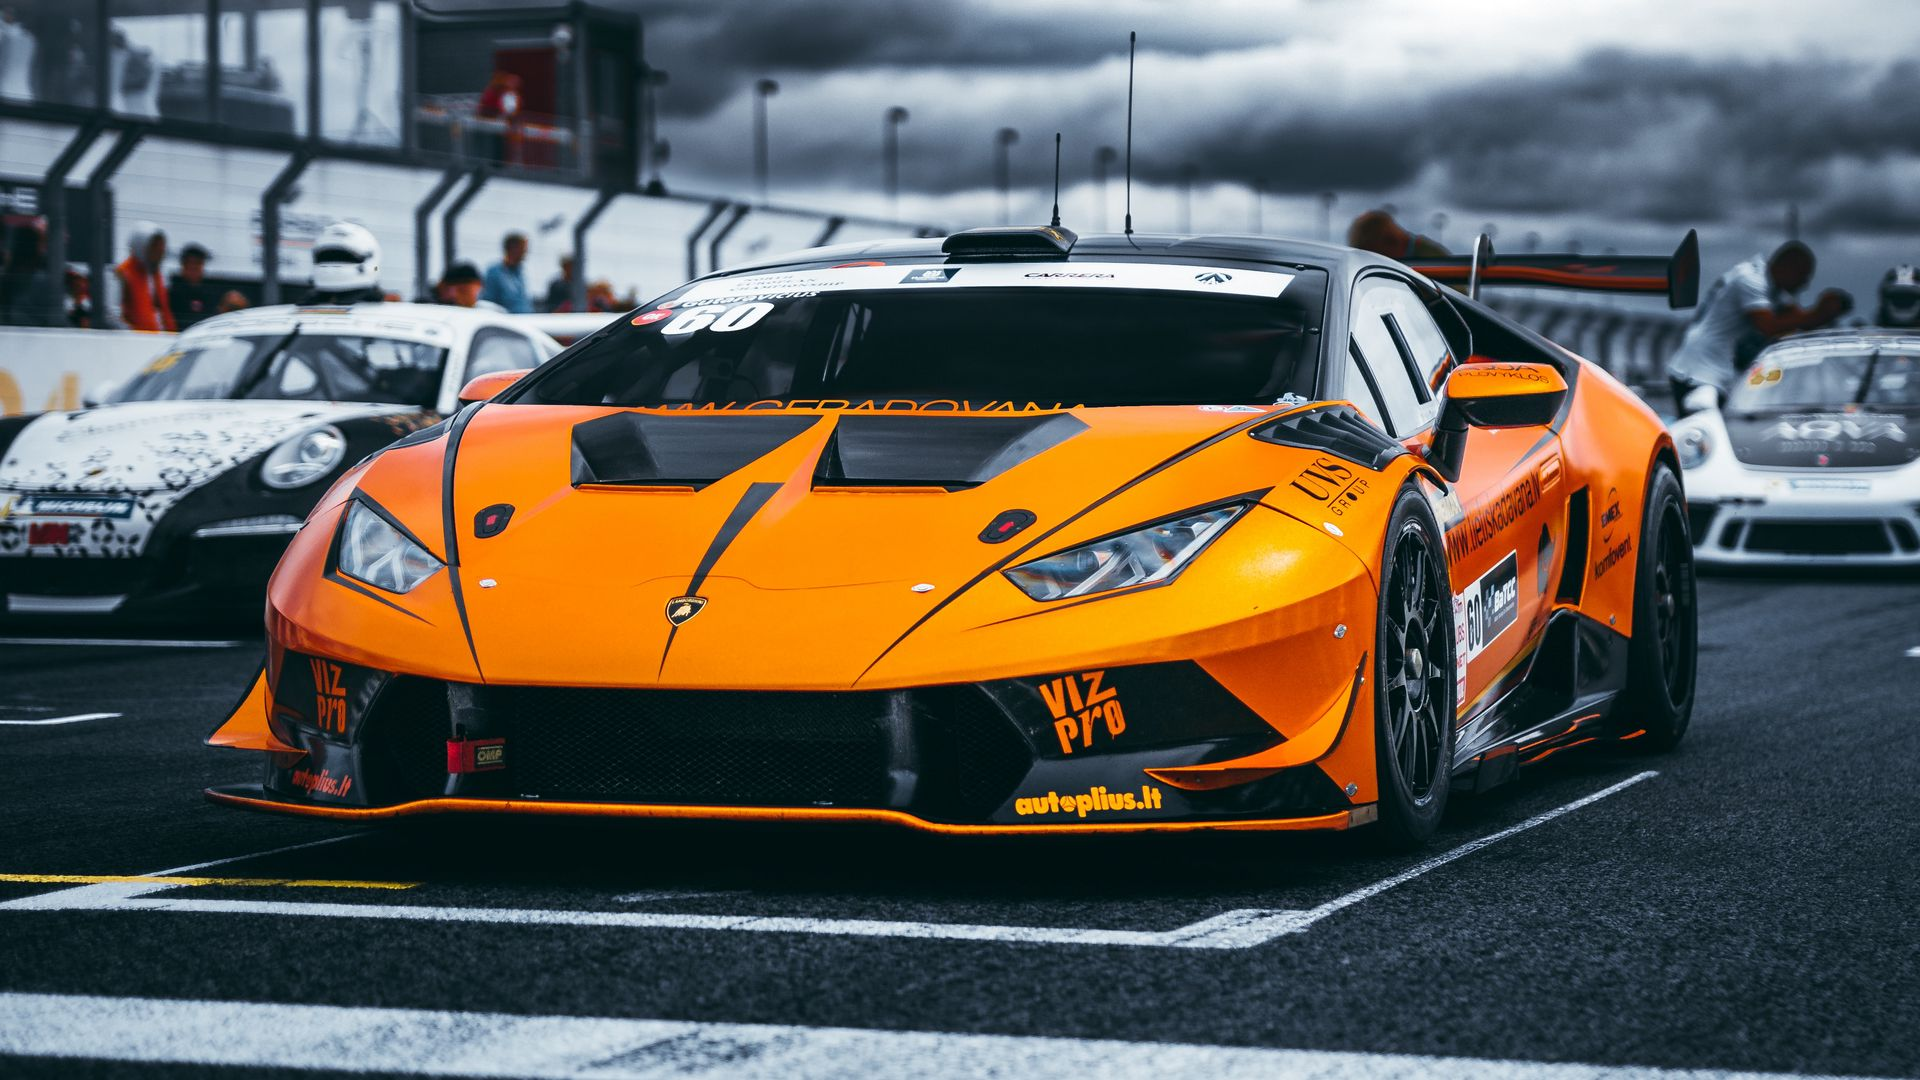 The Wallpapers Related to Lamborghini, Car, Sports Car